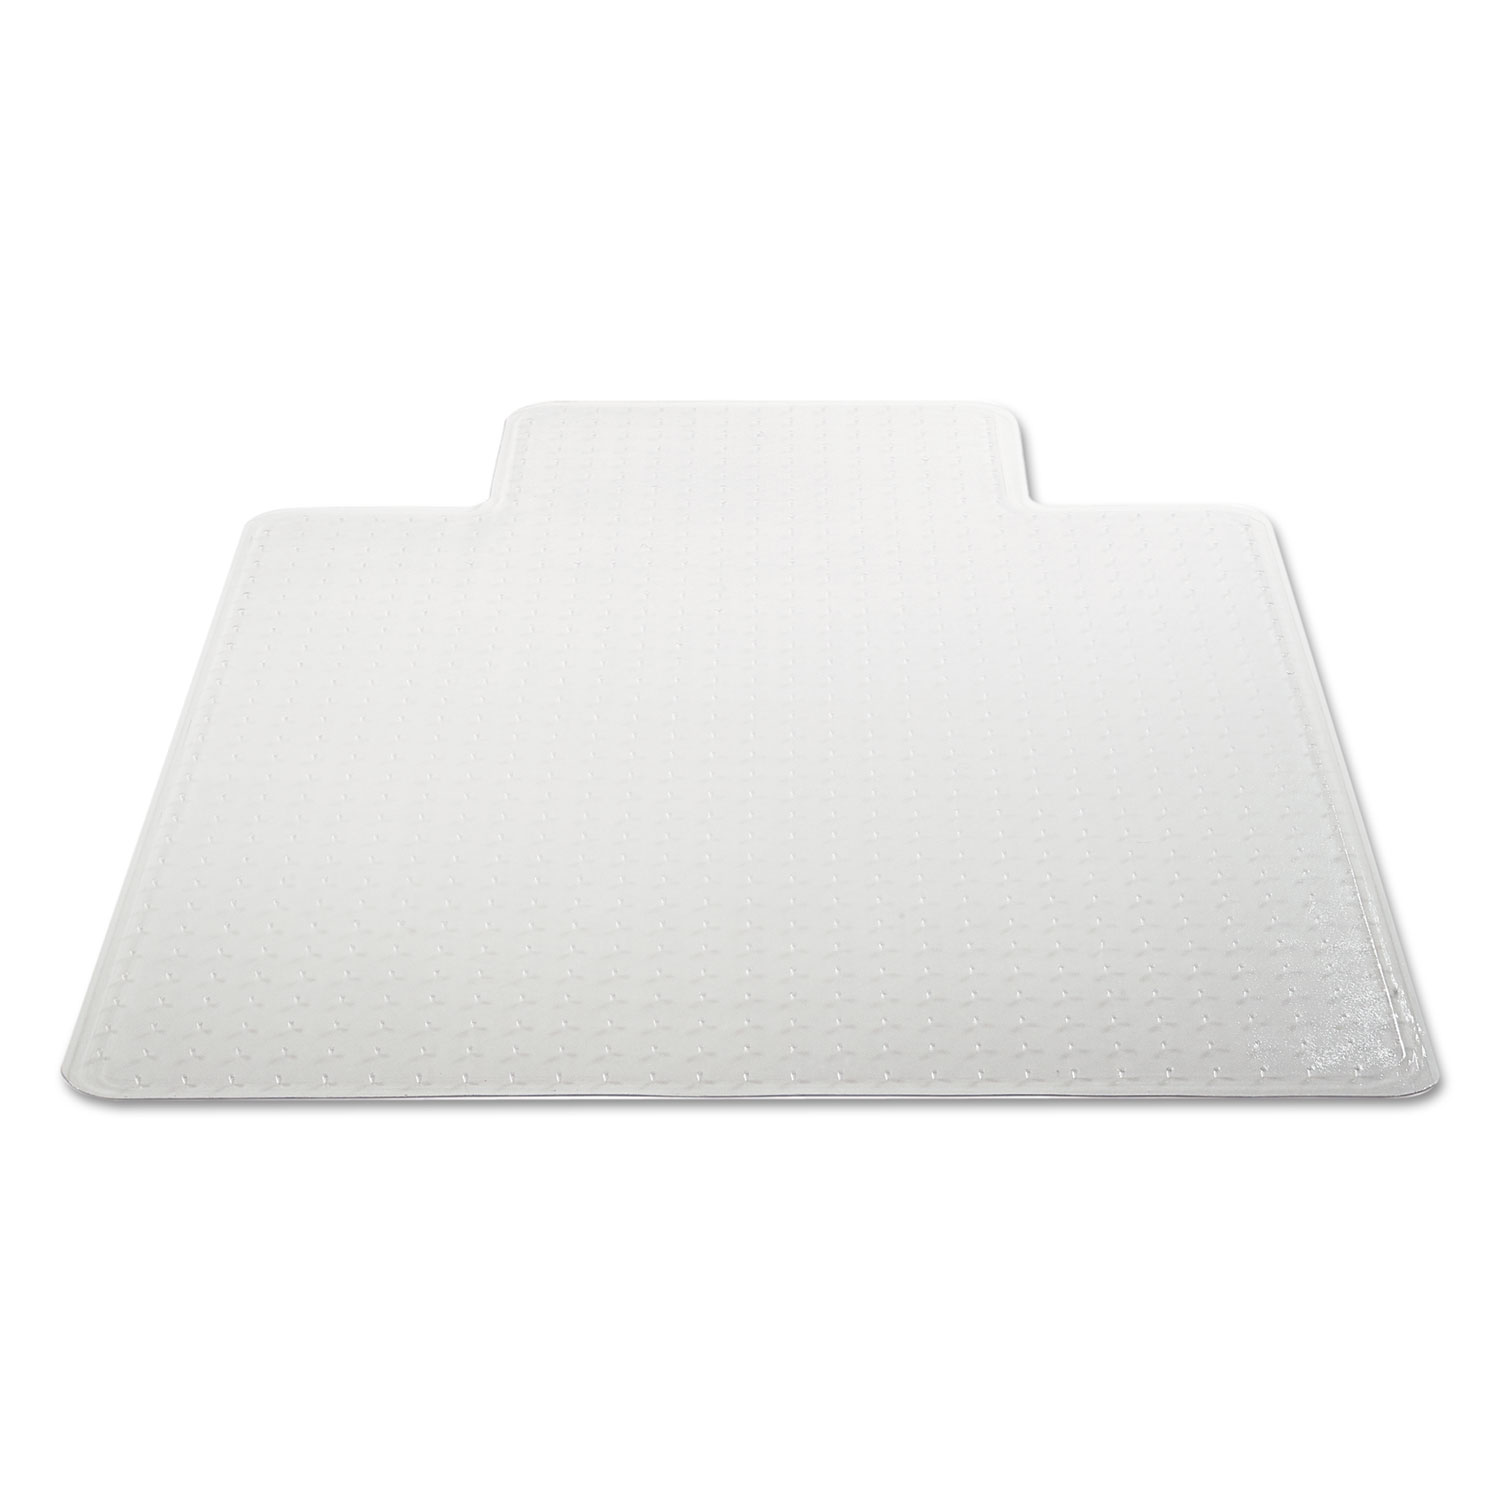 Studded Chair Mat For Low Pile Carpet By Alera